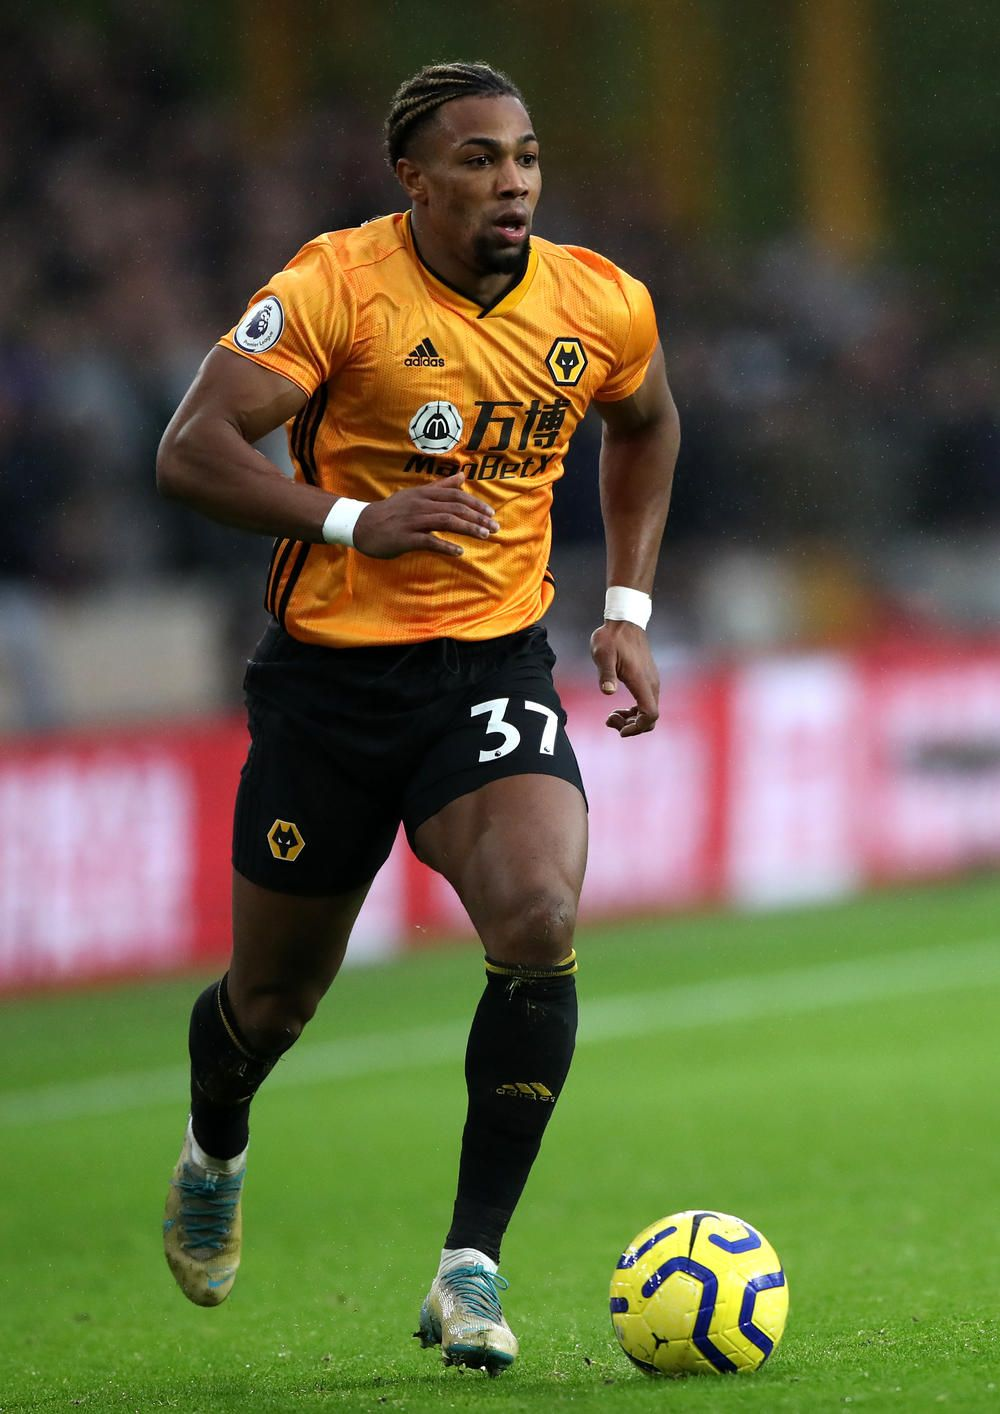 Nuno Espirito Santo Delighted Adama Traore Switch Paid Off For Wolves Fourfourtwocatch All Of The Action With In 2020 Football Is Life Football Players Soccer Players